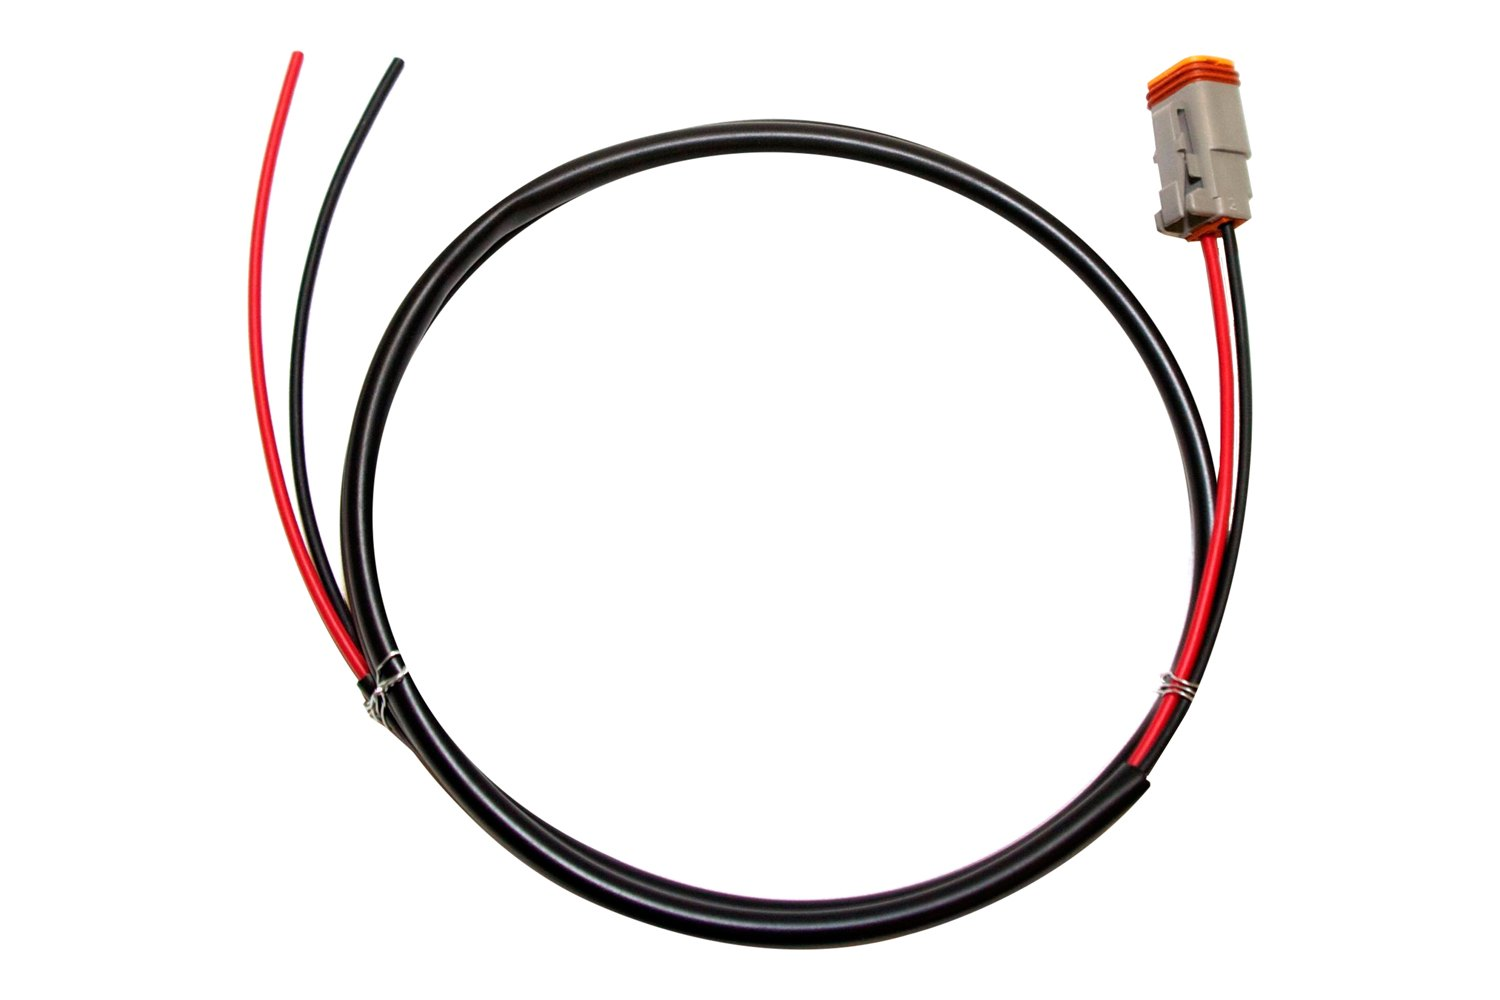 wiring harness industries in pune